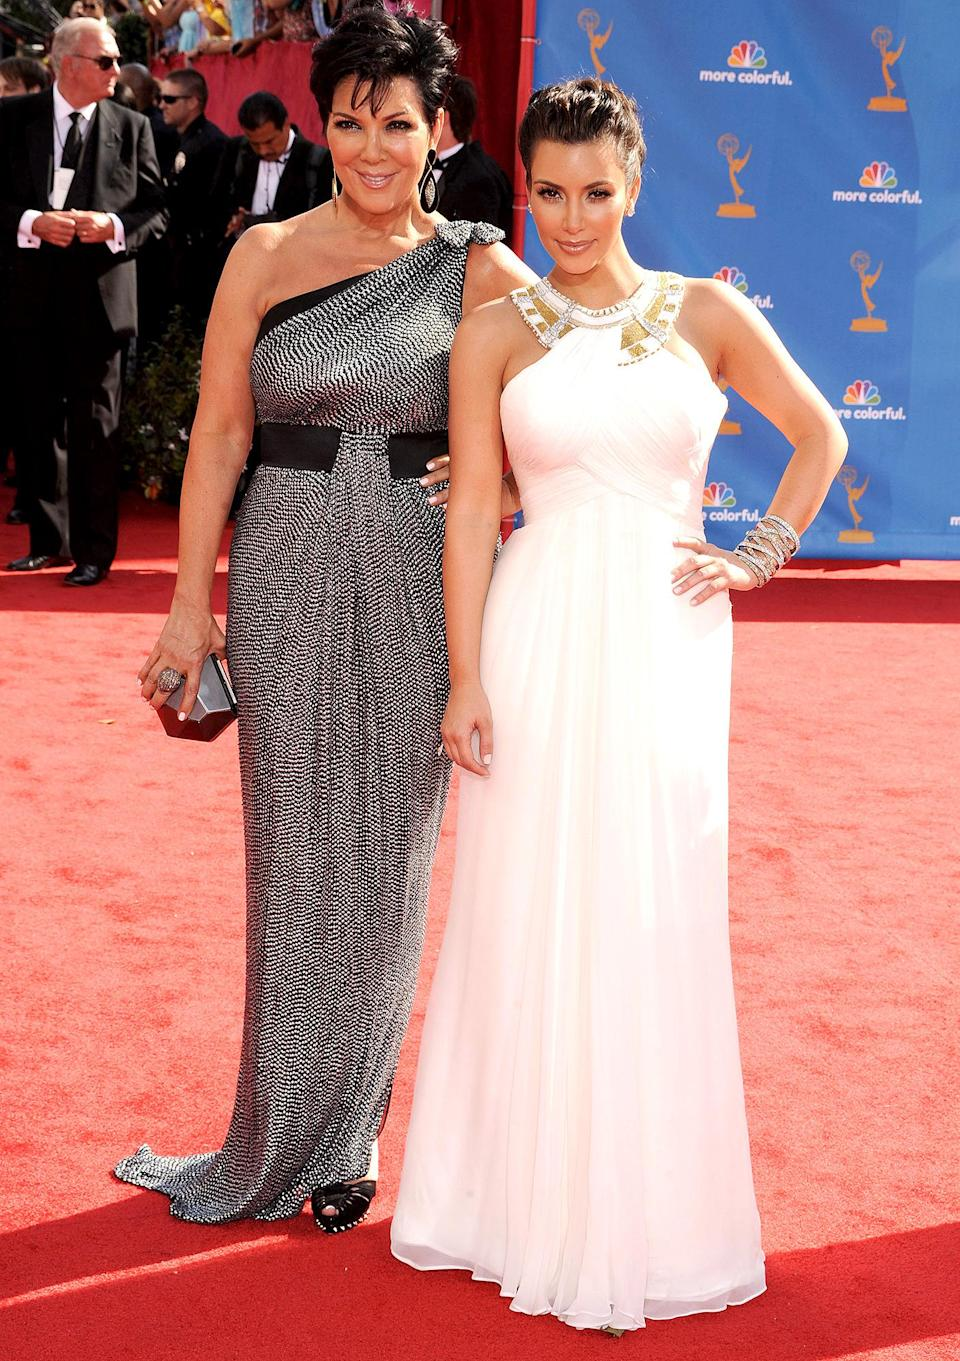 "<p>Kris Jenner and Kim Kardashian had a mother-daughter date on the red carpet, and Kim <a href=""https://www.youtube.com/watch?v=bU9UhNYbR74"" rel=""nofollow noopener"" target=""_blank"" data-ylk=""slk:flexed her vocal skills"" class=""link rapid-noclick-resp"">flexed her vocal skills</a> while introducing the reality category (of course!) with Jimmy Fallon.</p>"